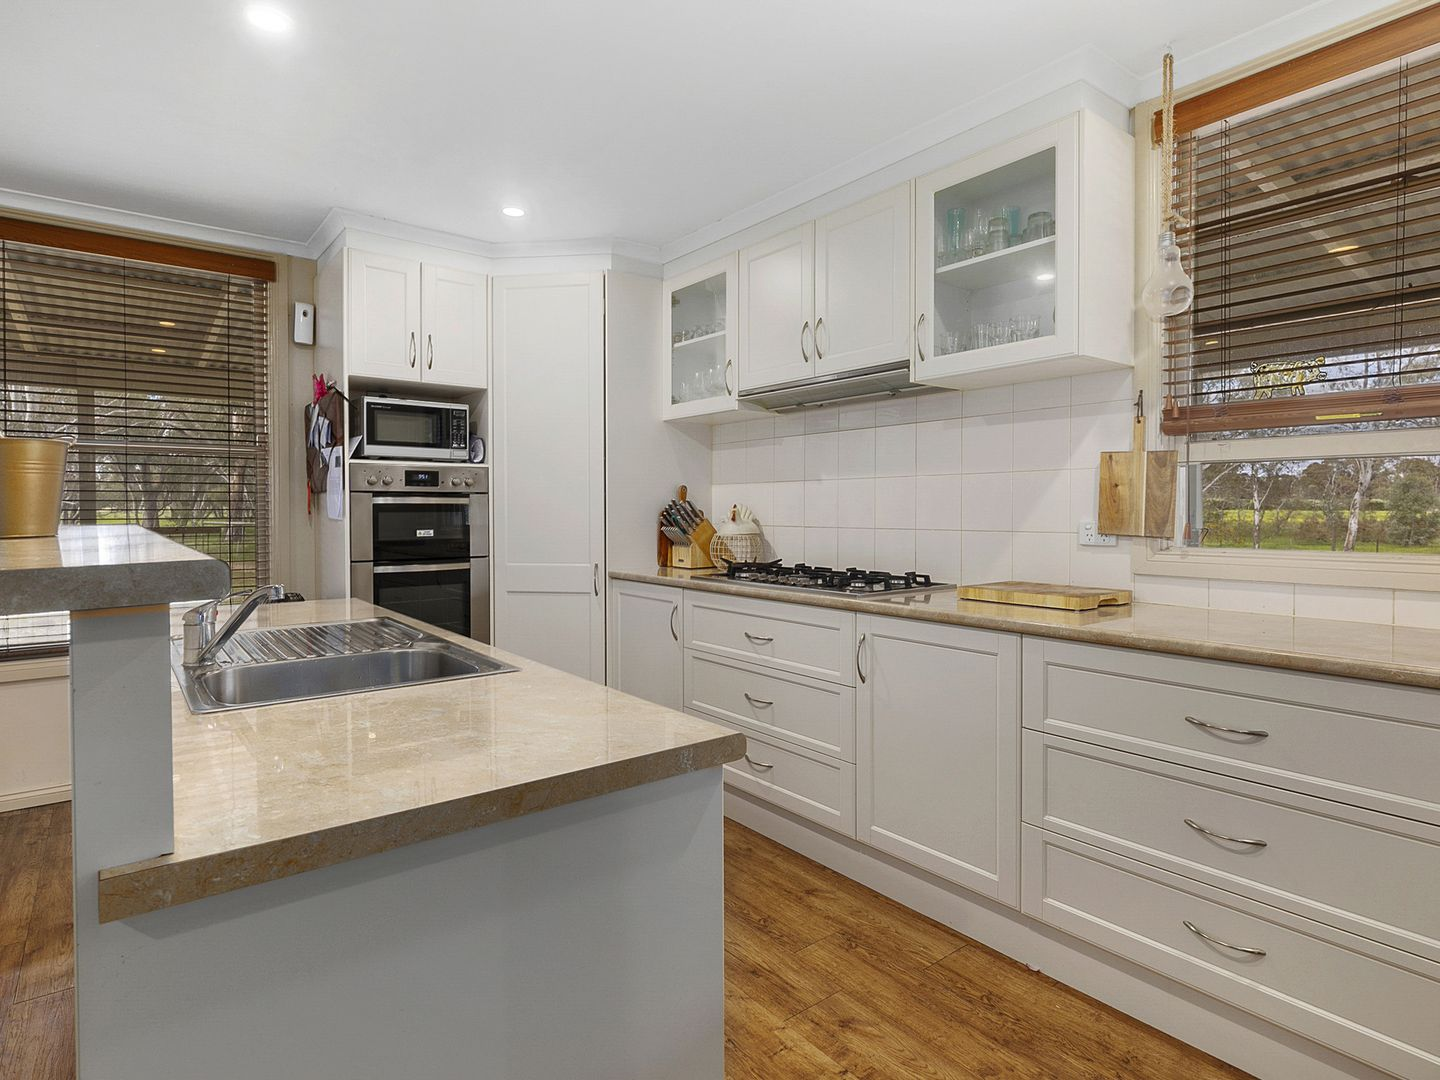 380 O'connors Rd, Mangalore VIC 3663, Image 2